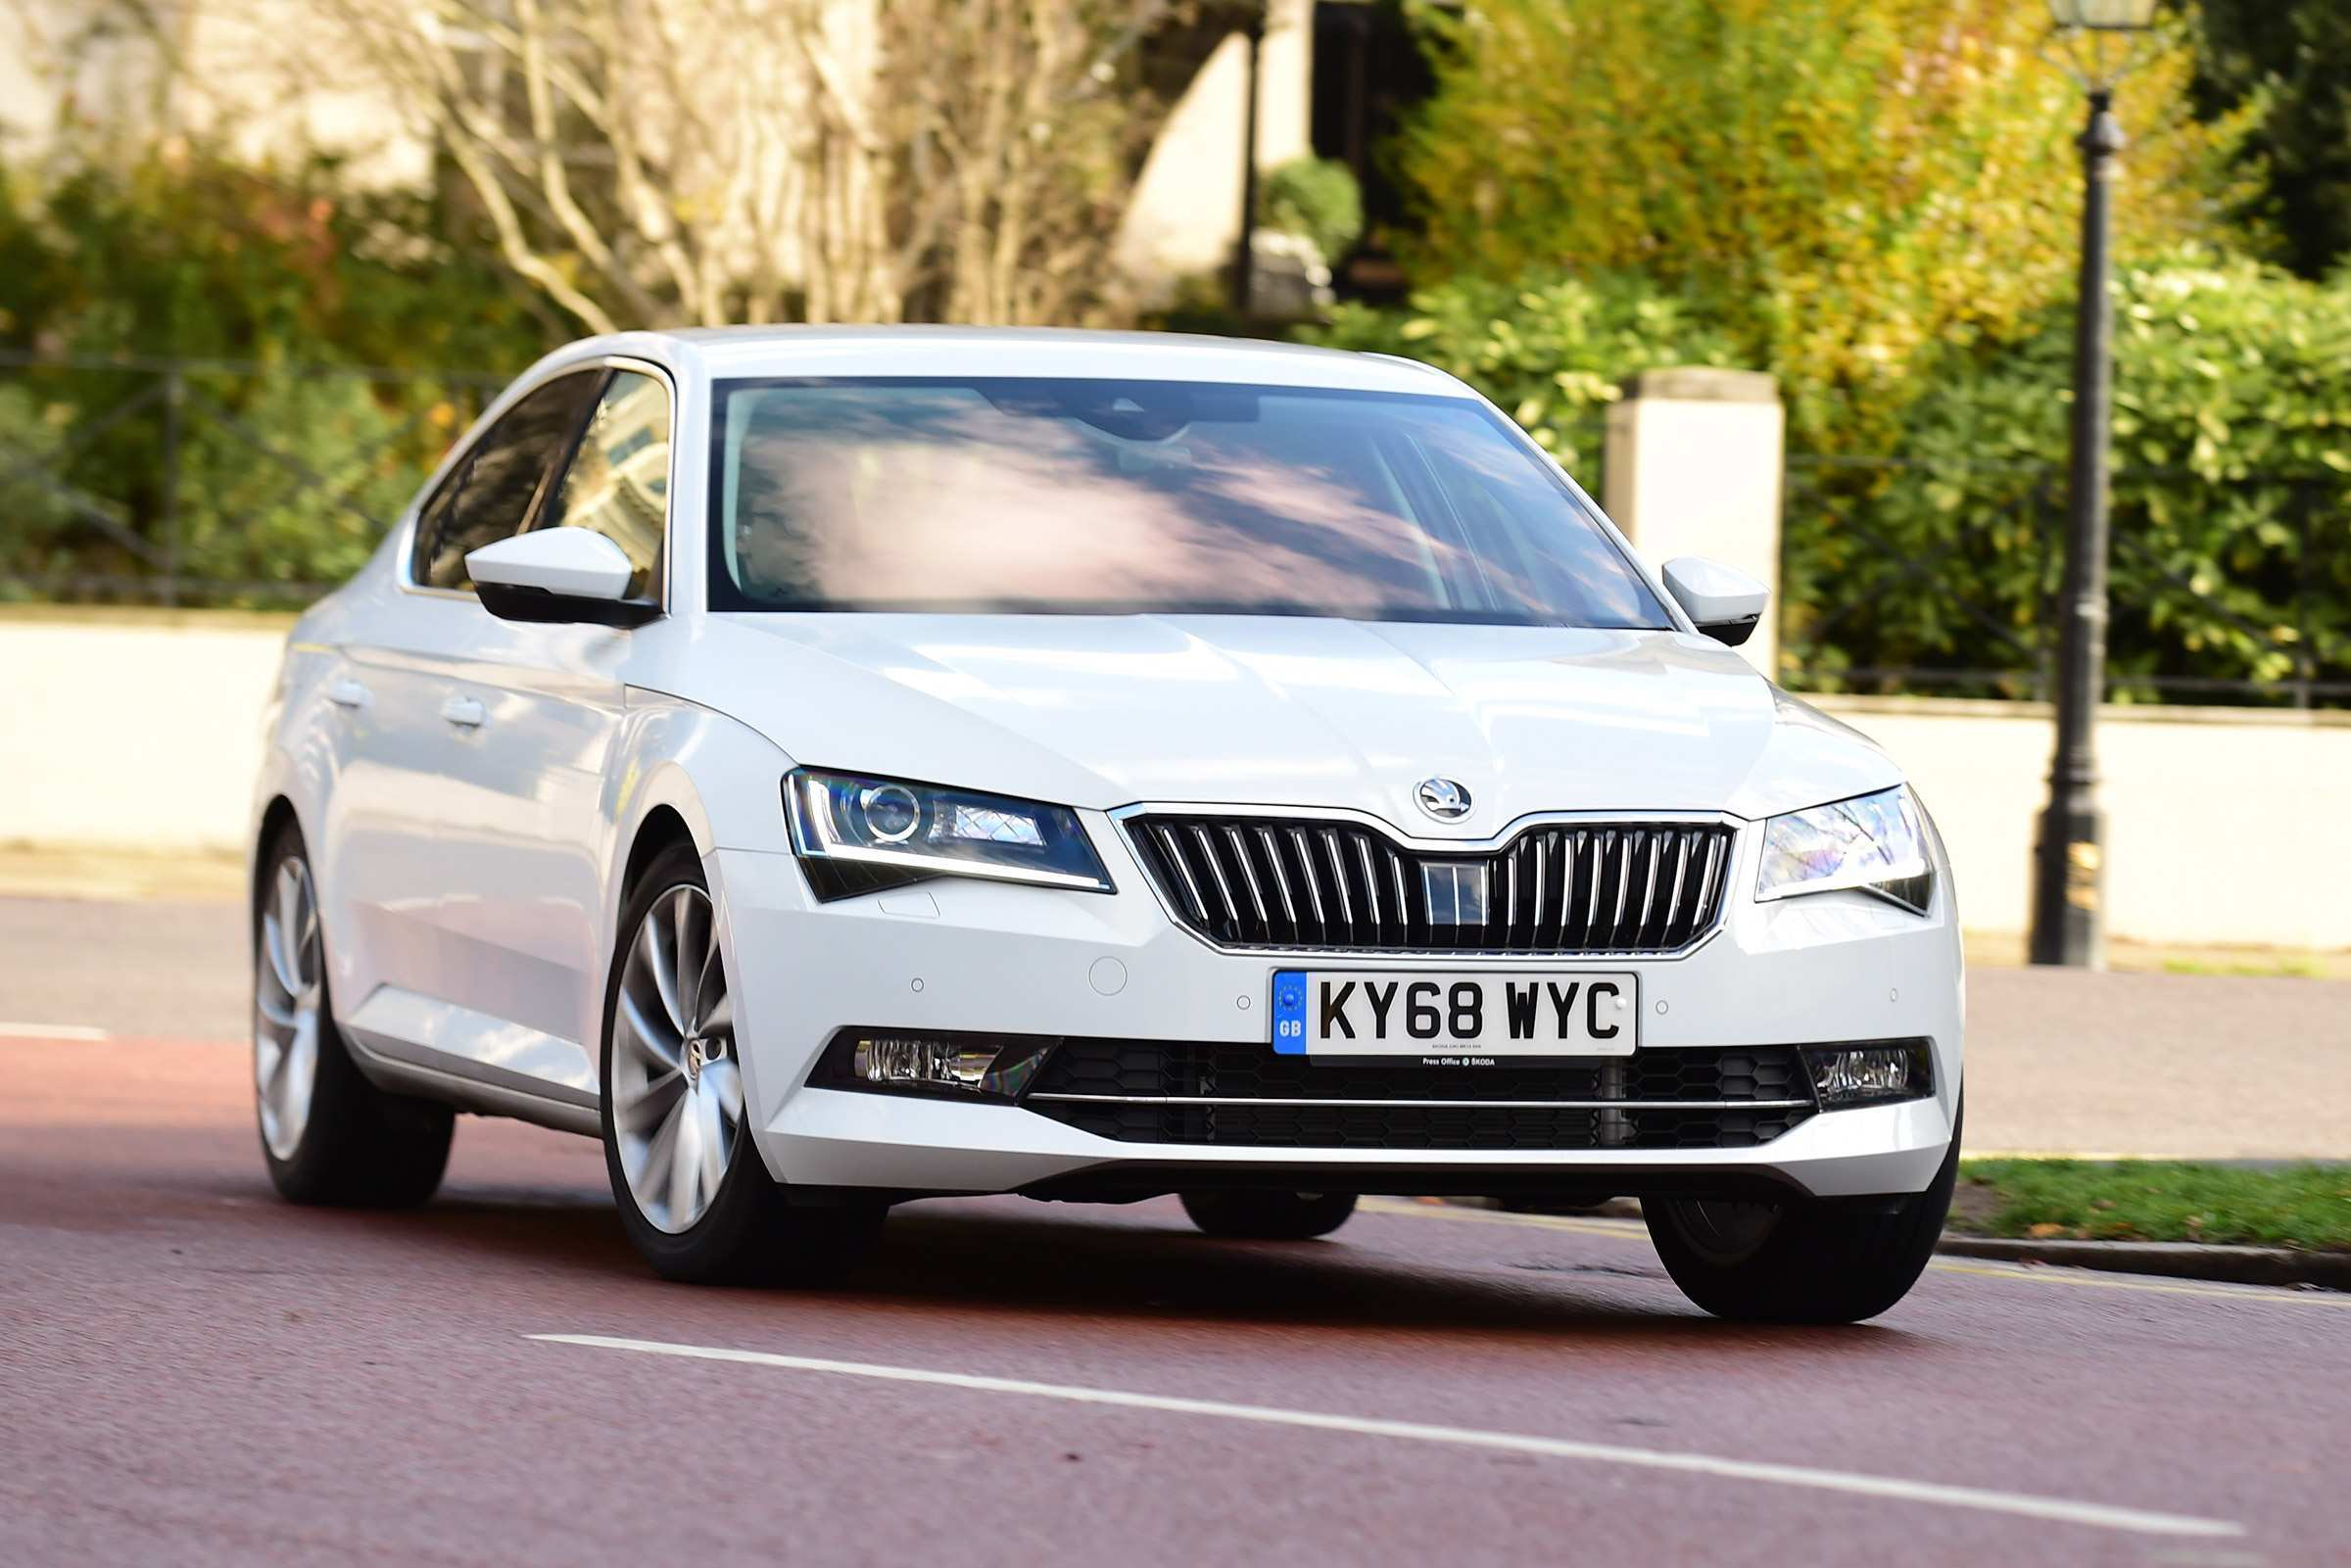 62 The Best 2019 New Skoda Superb Speed Test